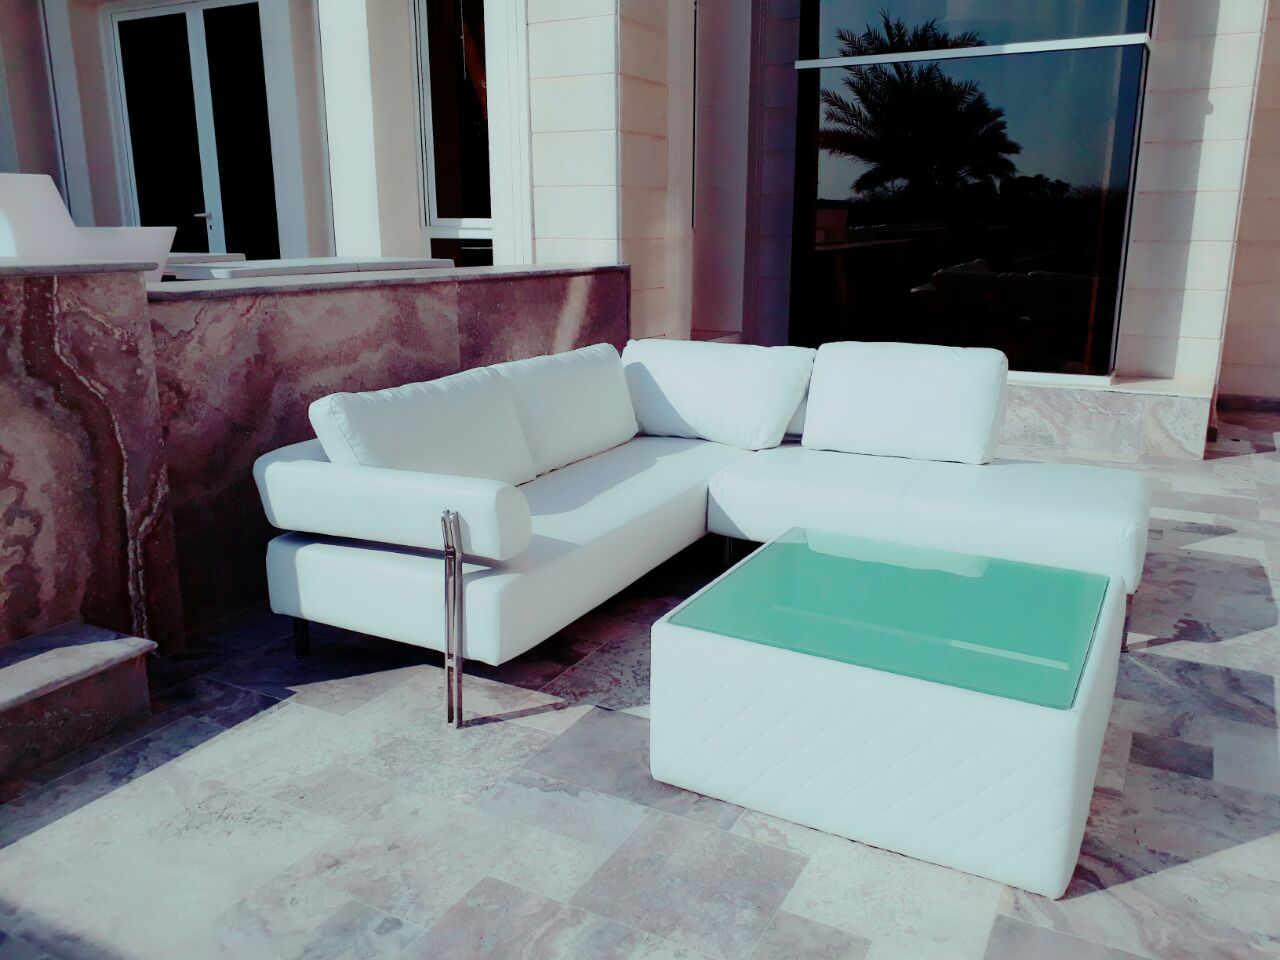 Sofa Set For Sale Abu Dhabi L Shaped Sofa For Rent Or Sale In Dubai And The Uae Areeka